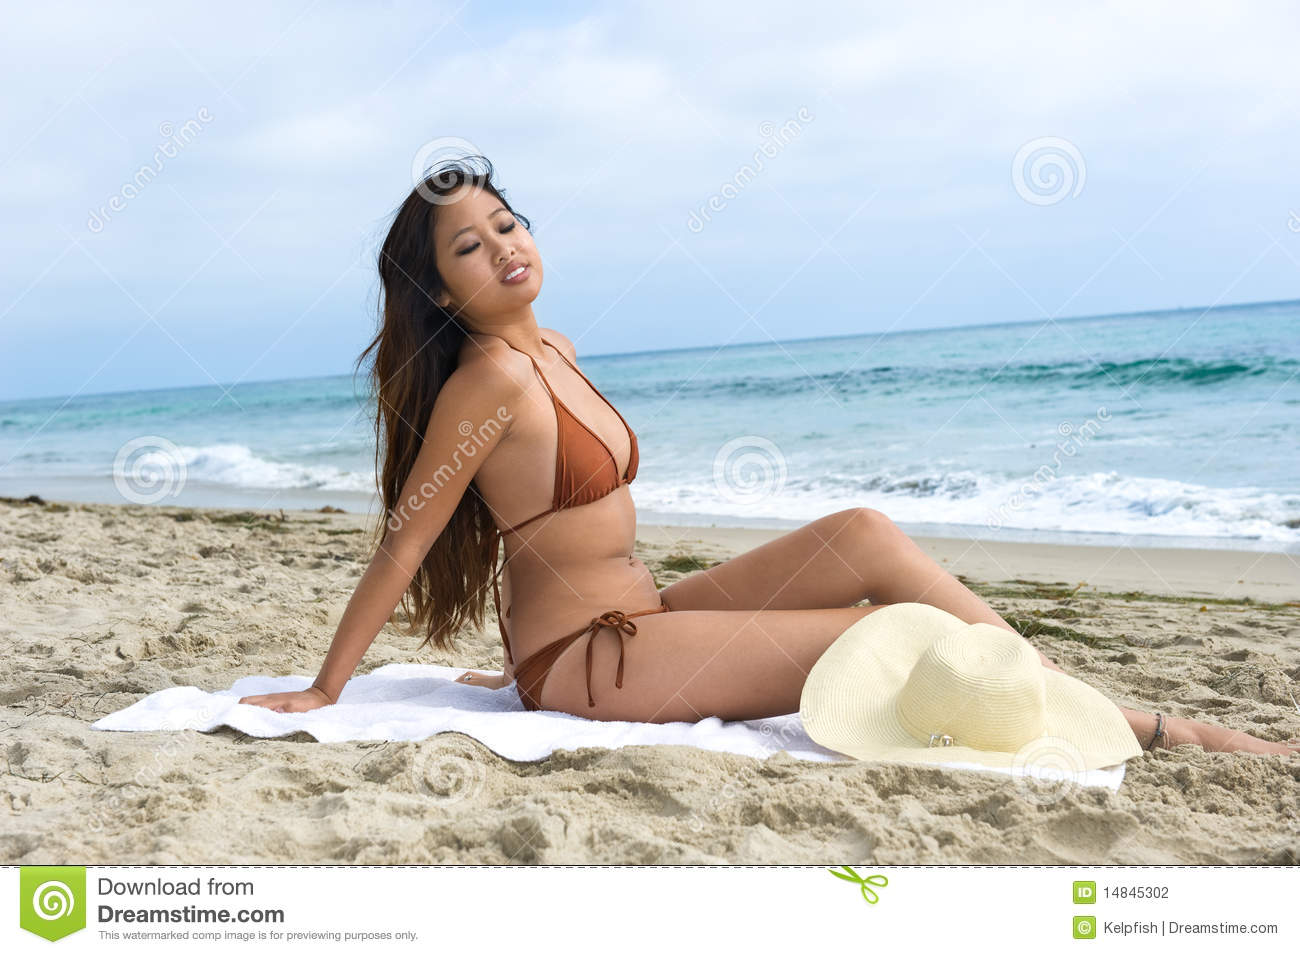 orange beach asian personals Los angeles classifieds post free ads for apartments, houses for rent, jobs, furniture, appliances, cars, pets and items for sale.